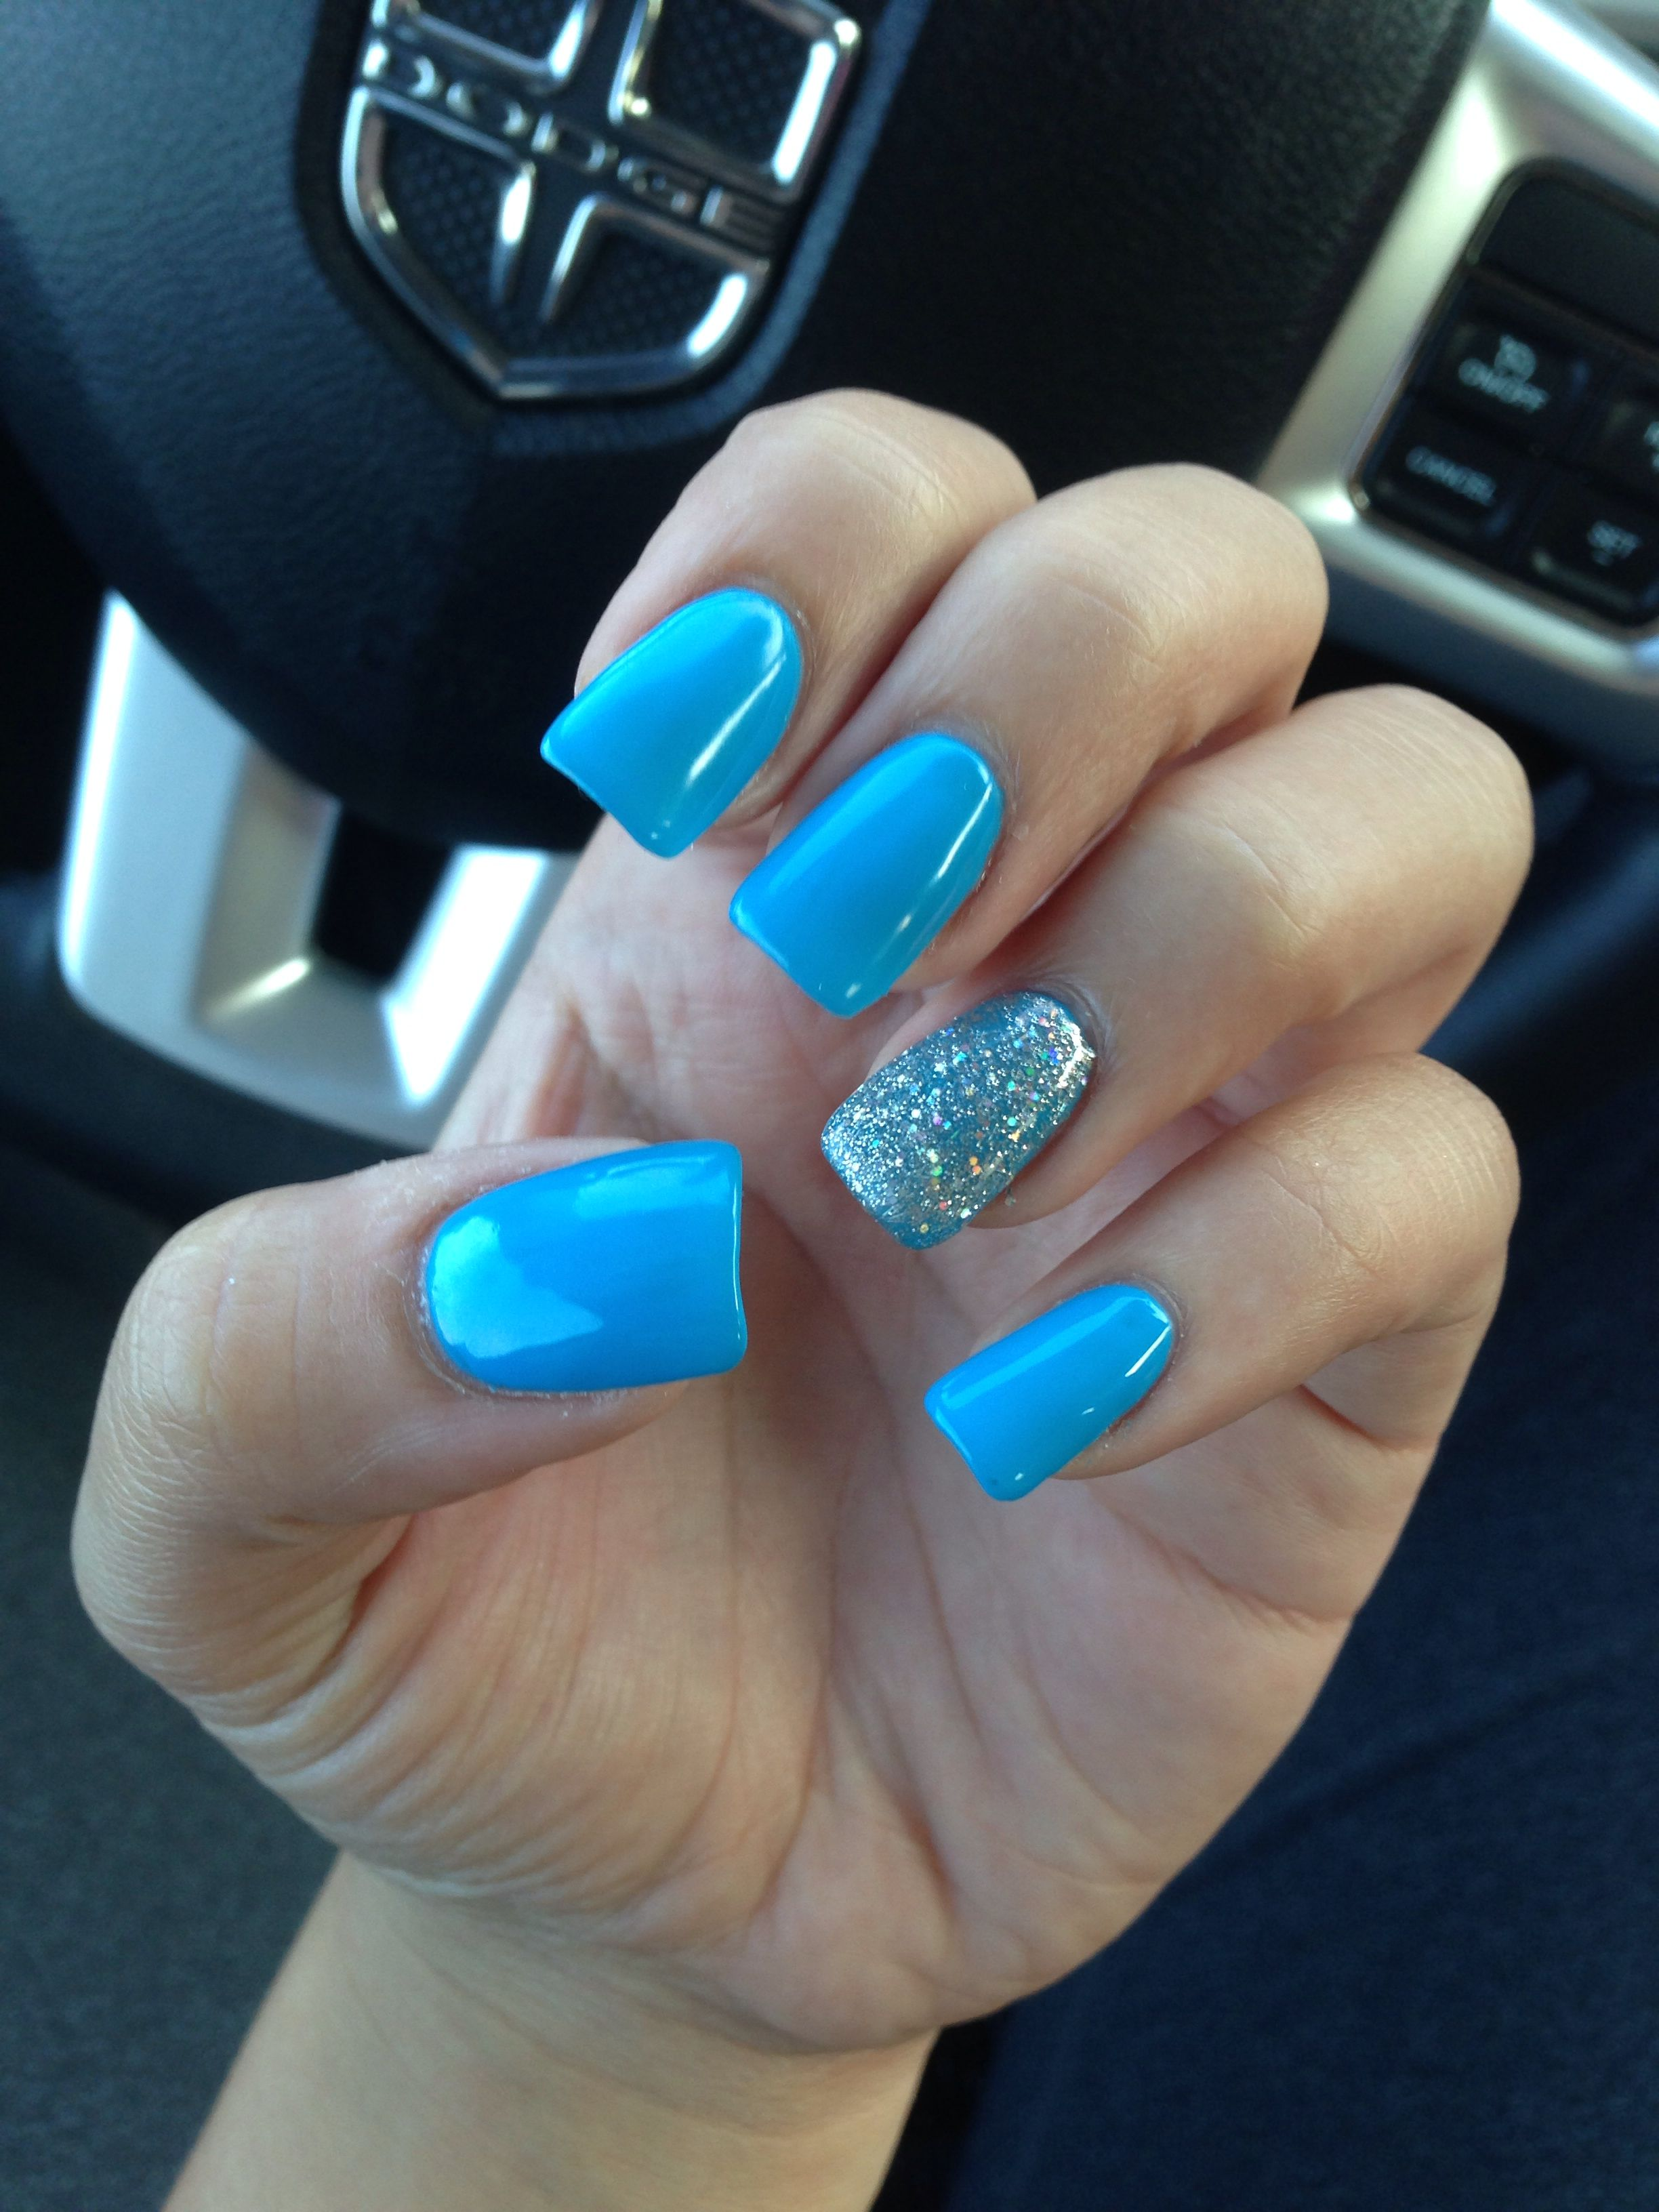 Want To Find This Color